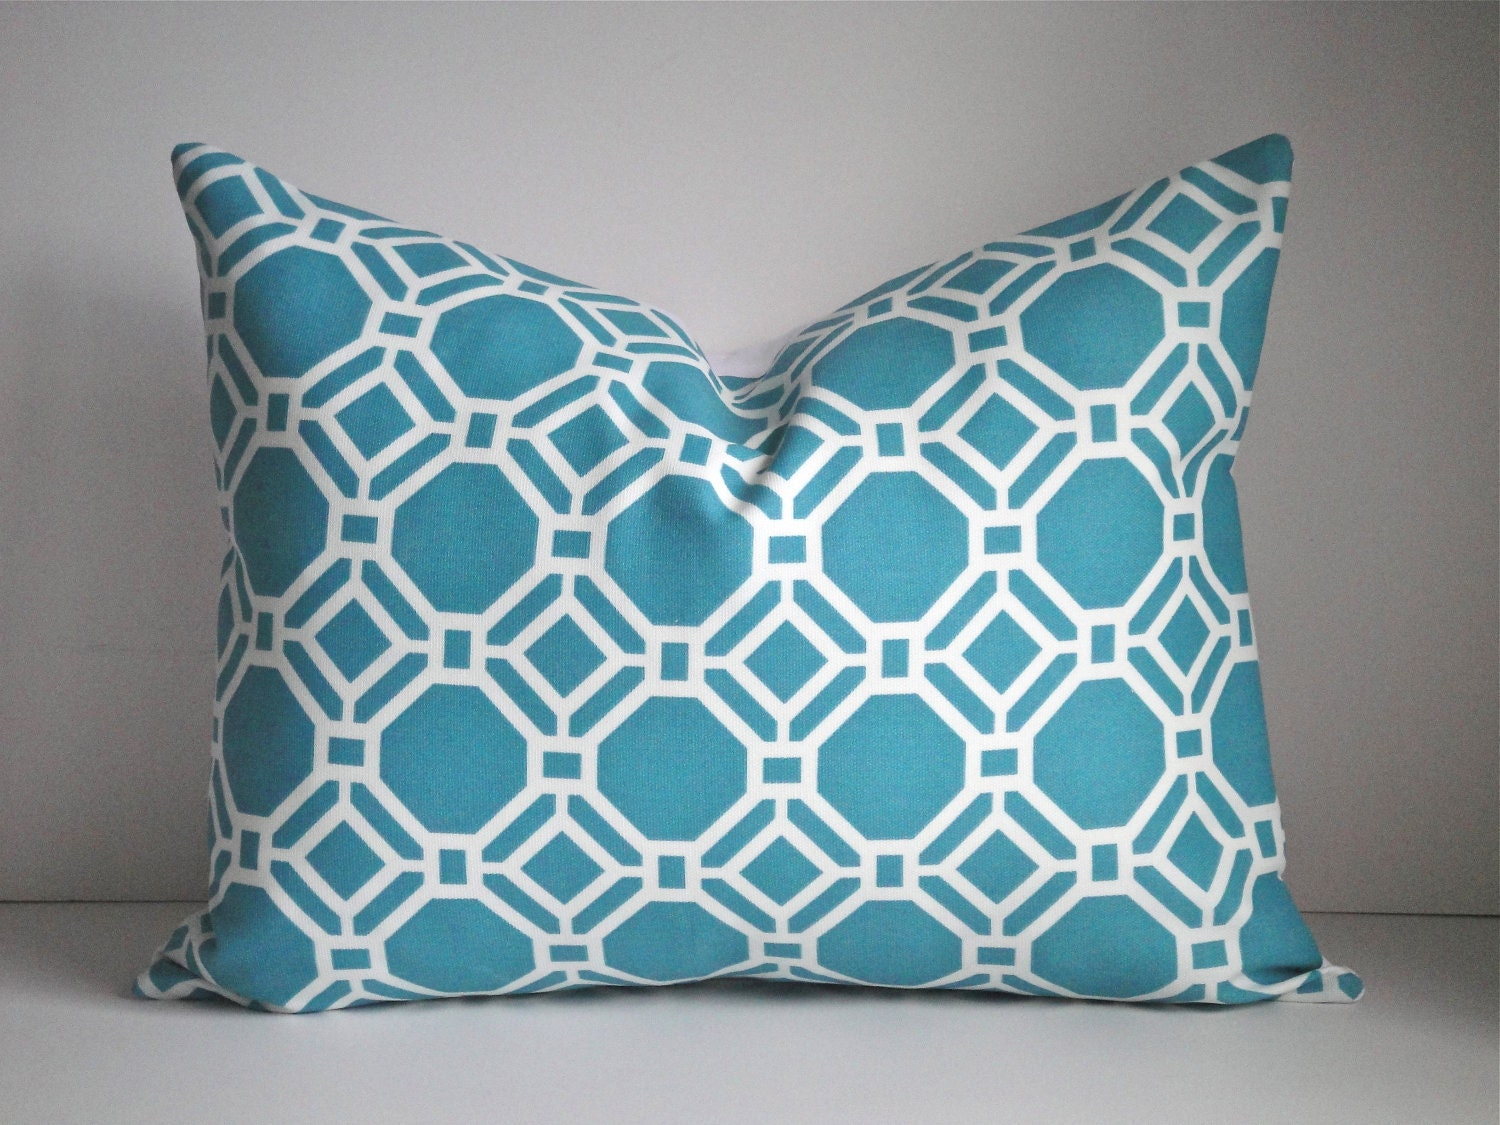 Decorative Throw Pillows Clearance : CLEARANCE FREE US Shipping 14x18 Decorative Pillow Cover